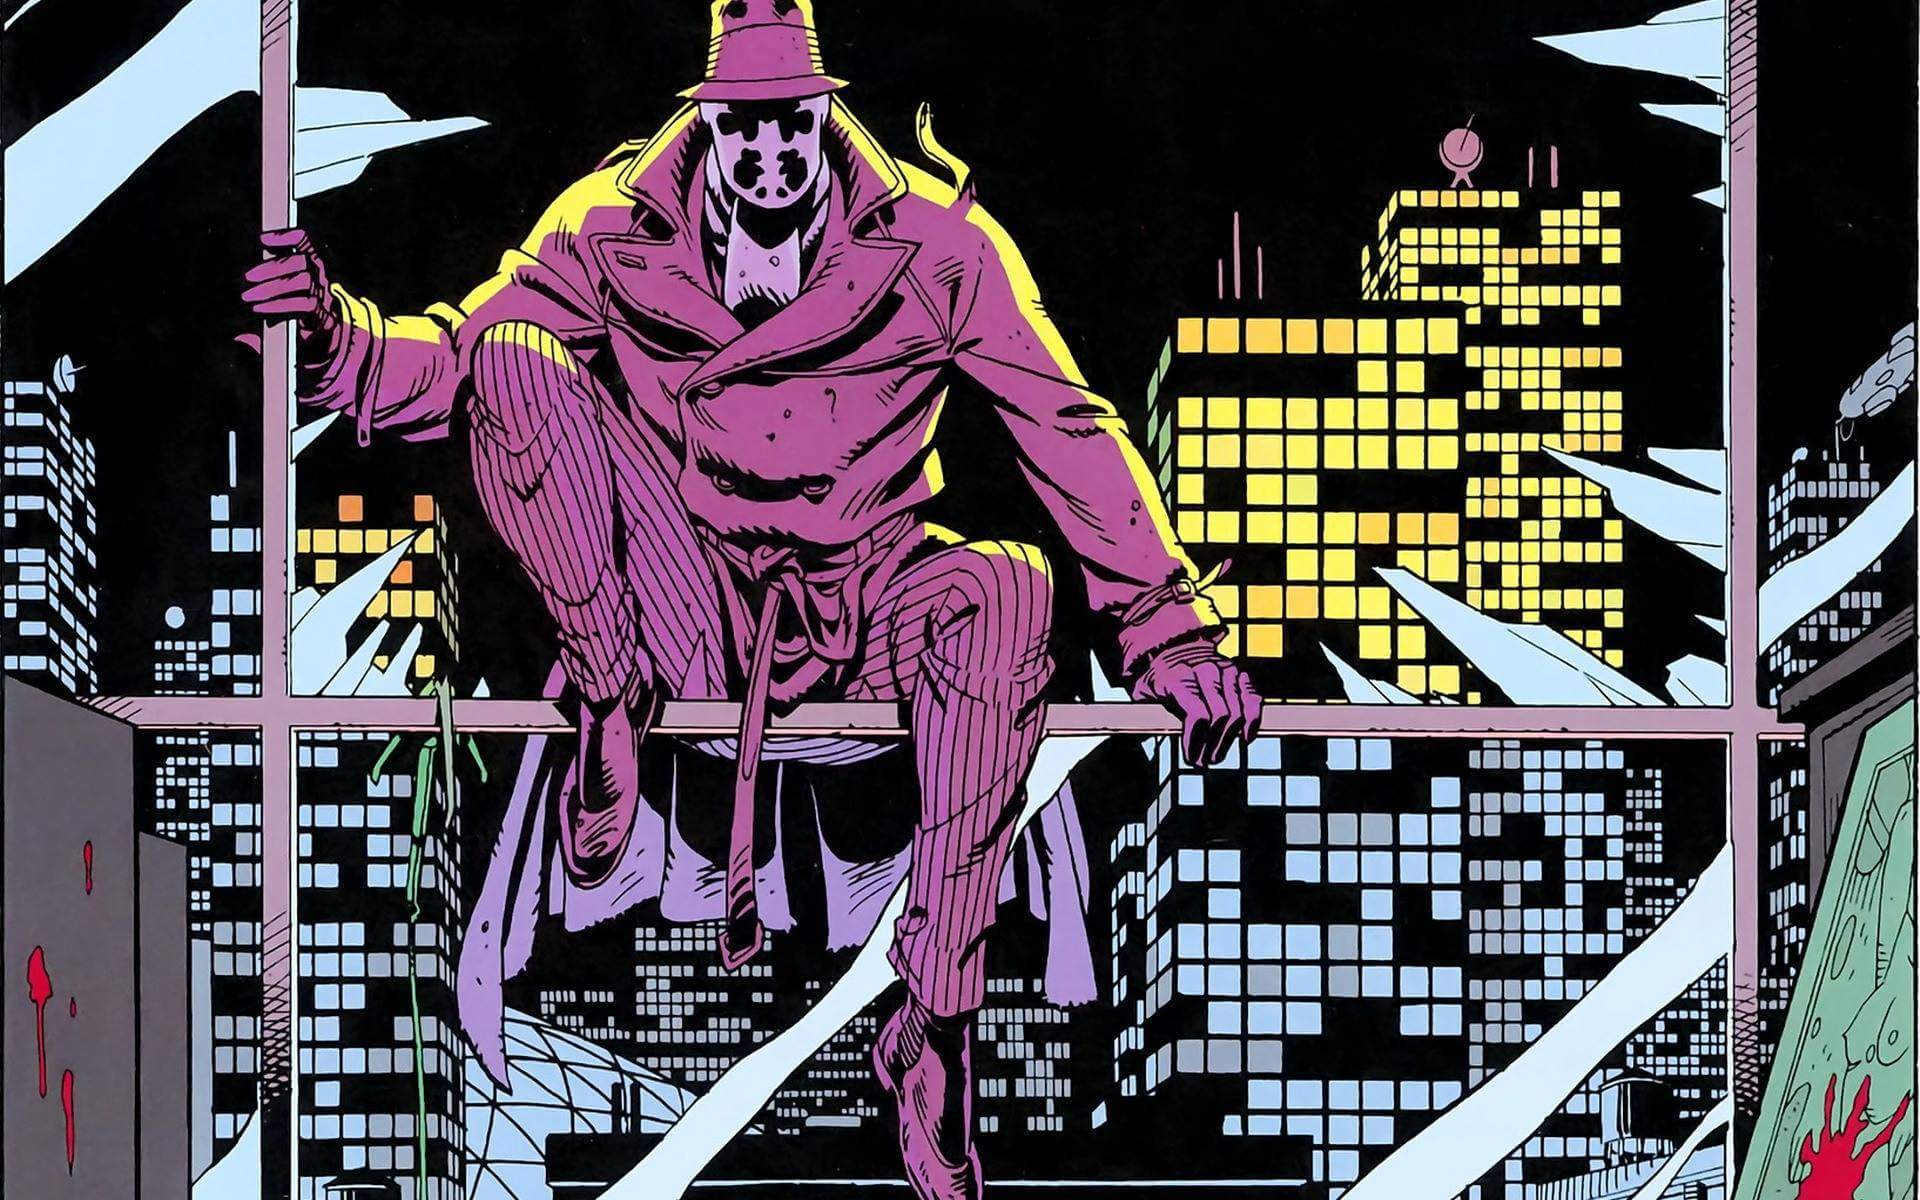 447279 superheroes watchmen graphic novel wallpaper 2 - HBO oficializa série de Watchmen e divulga data de estreia